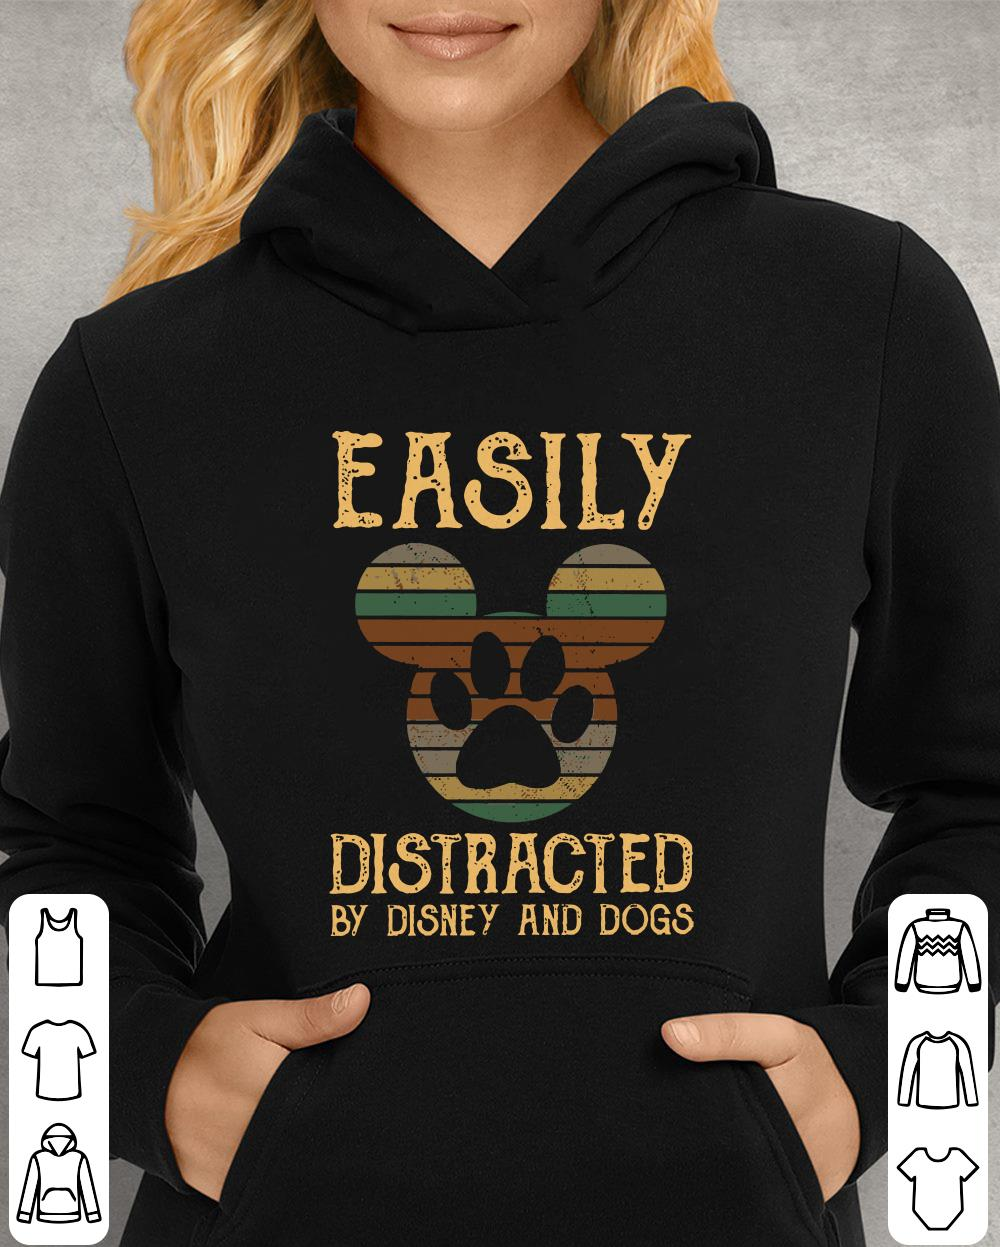 https://unicornshirts.net/images/2018/12/Easily-distracted-by-Disney-and-dogs-shirt_4.jpg